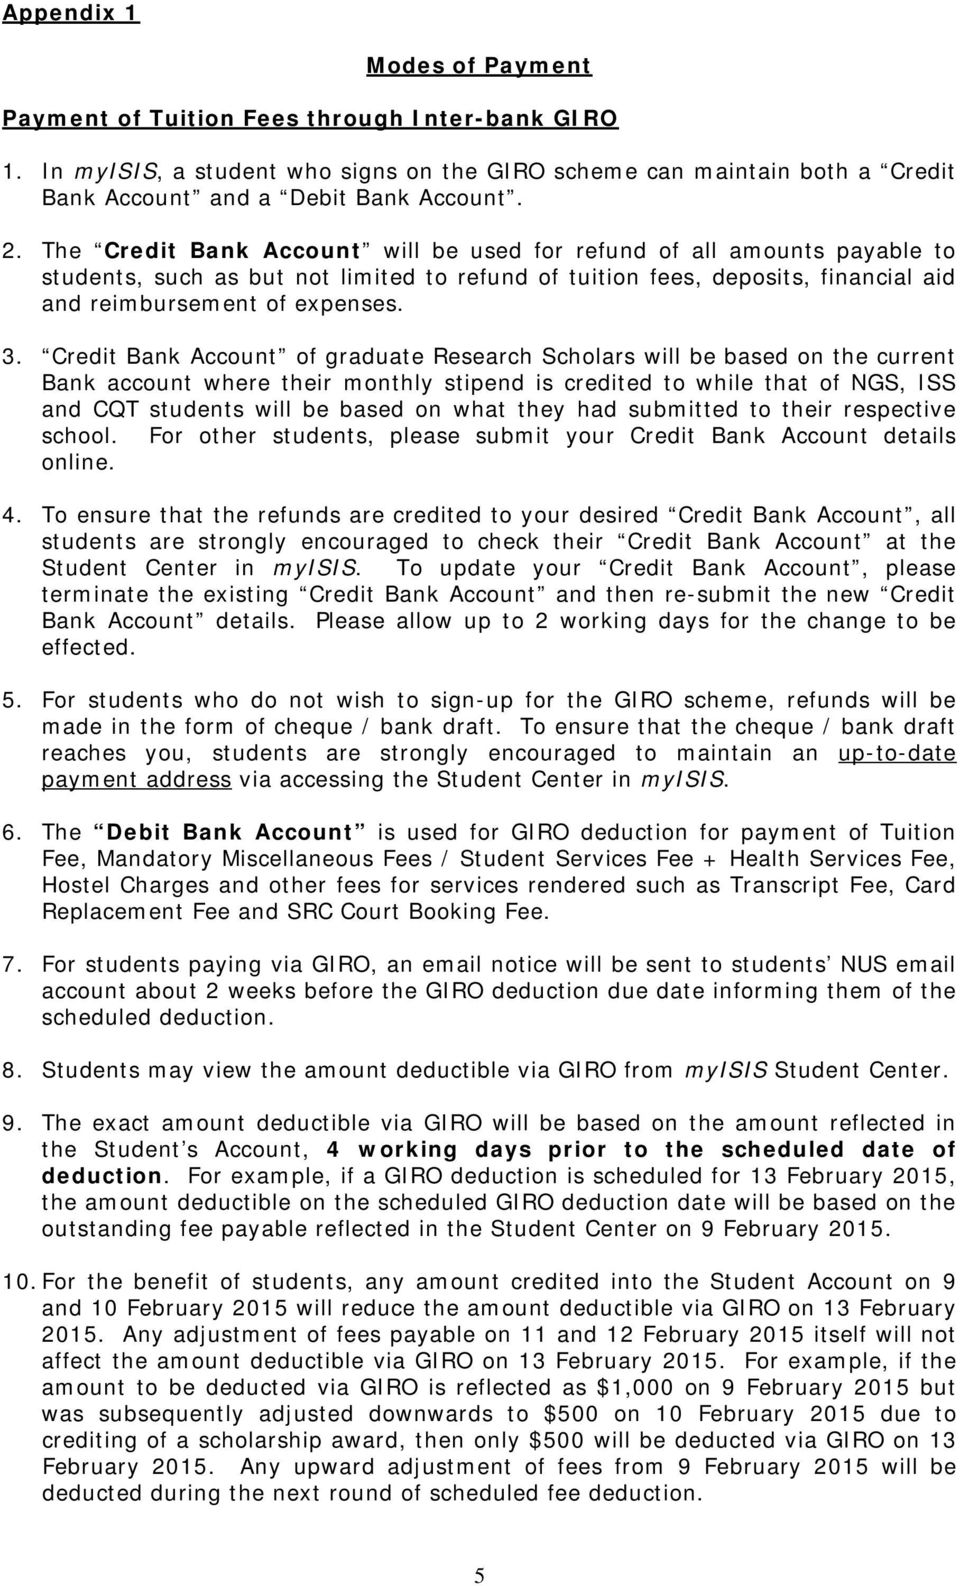 Credit Bank Account of graduate Research Scholars will be based on the current Bank account where their monthly stipend is credited to while that of NGS, ISS and CQT students will be based on what